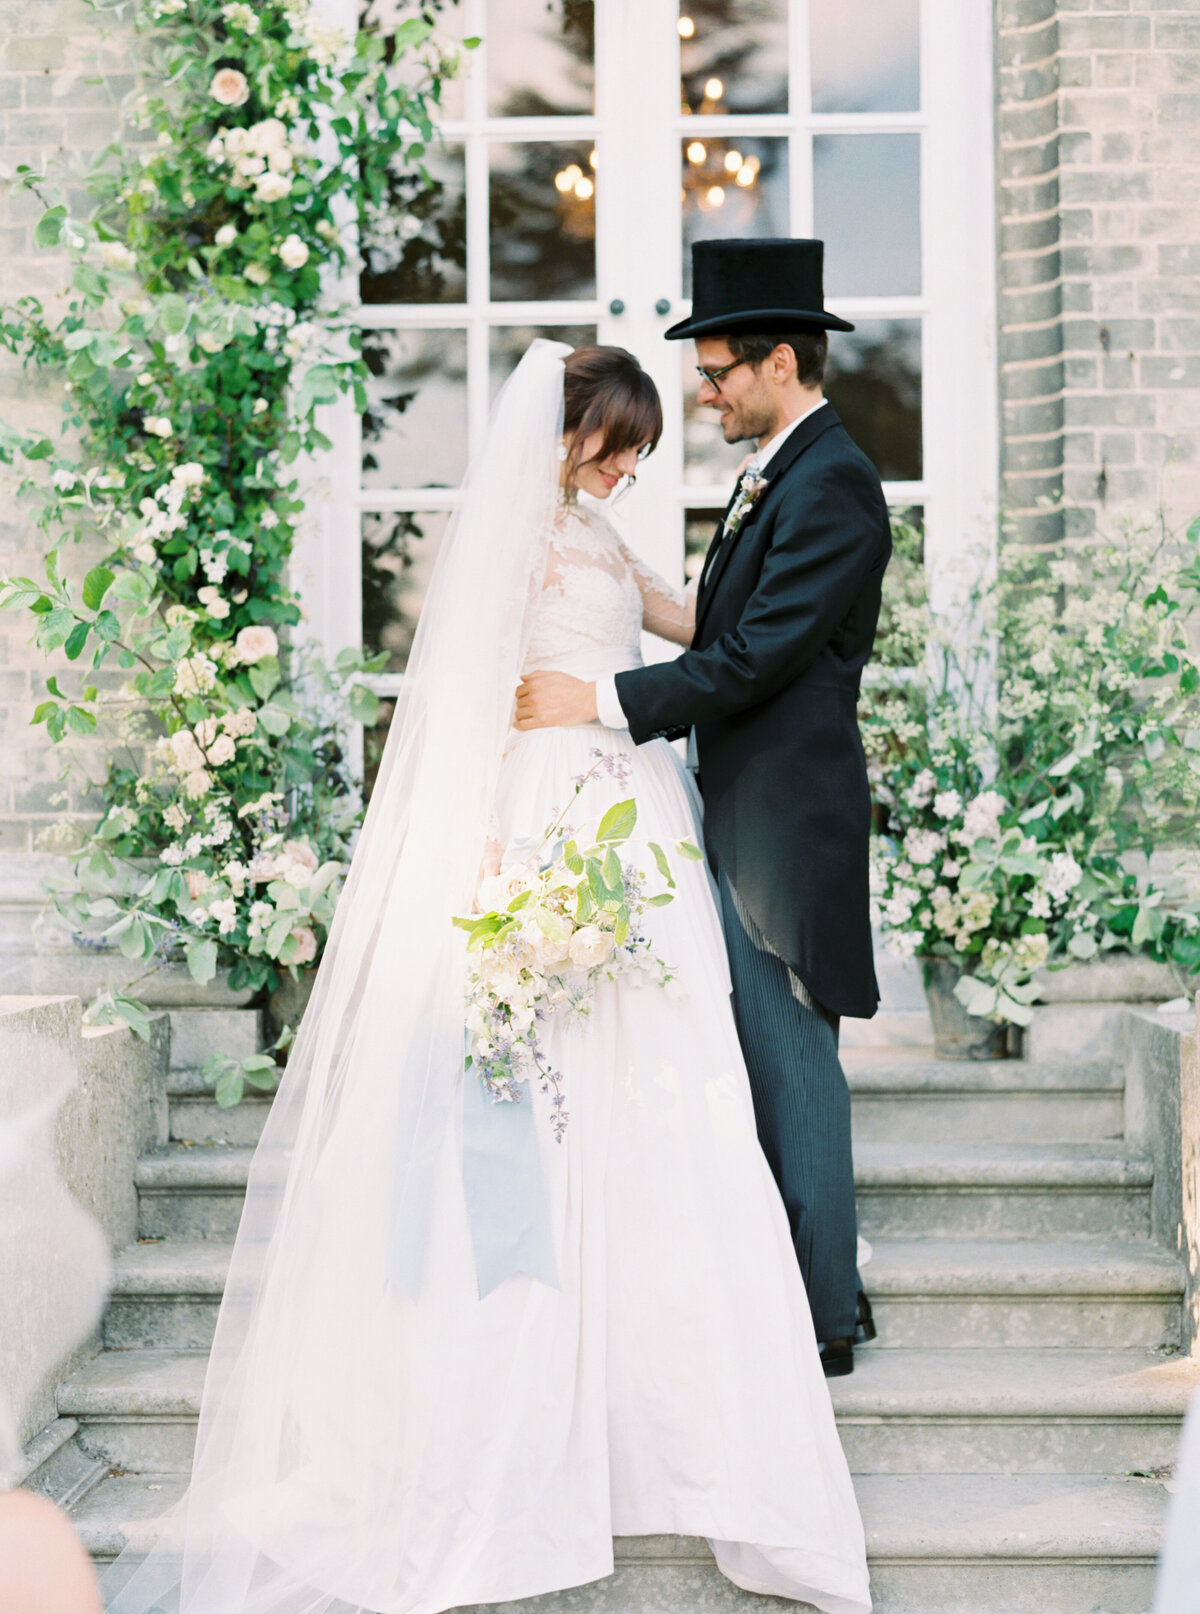 TiffaneyChildsPhotography-LondonWeddingPhotographer-Julieta+Cedrick-HedsorHouseWedding-231